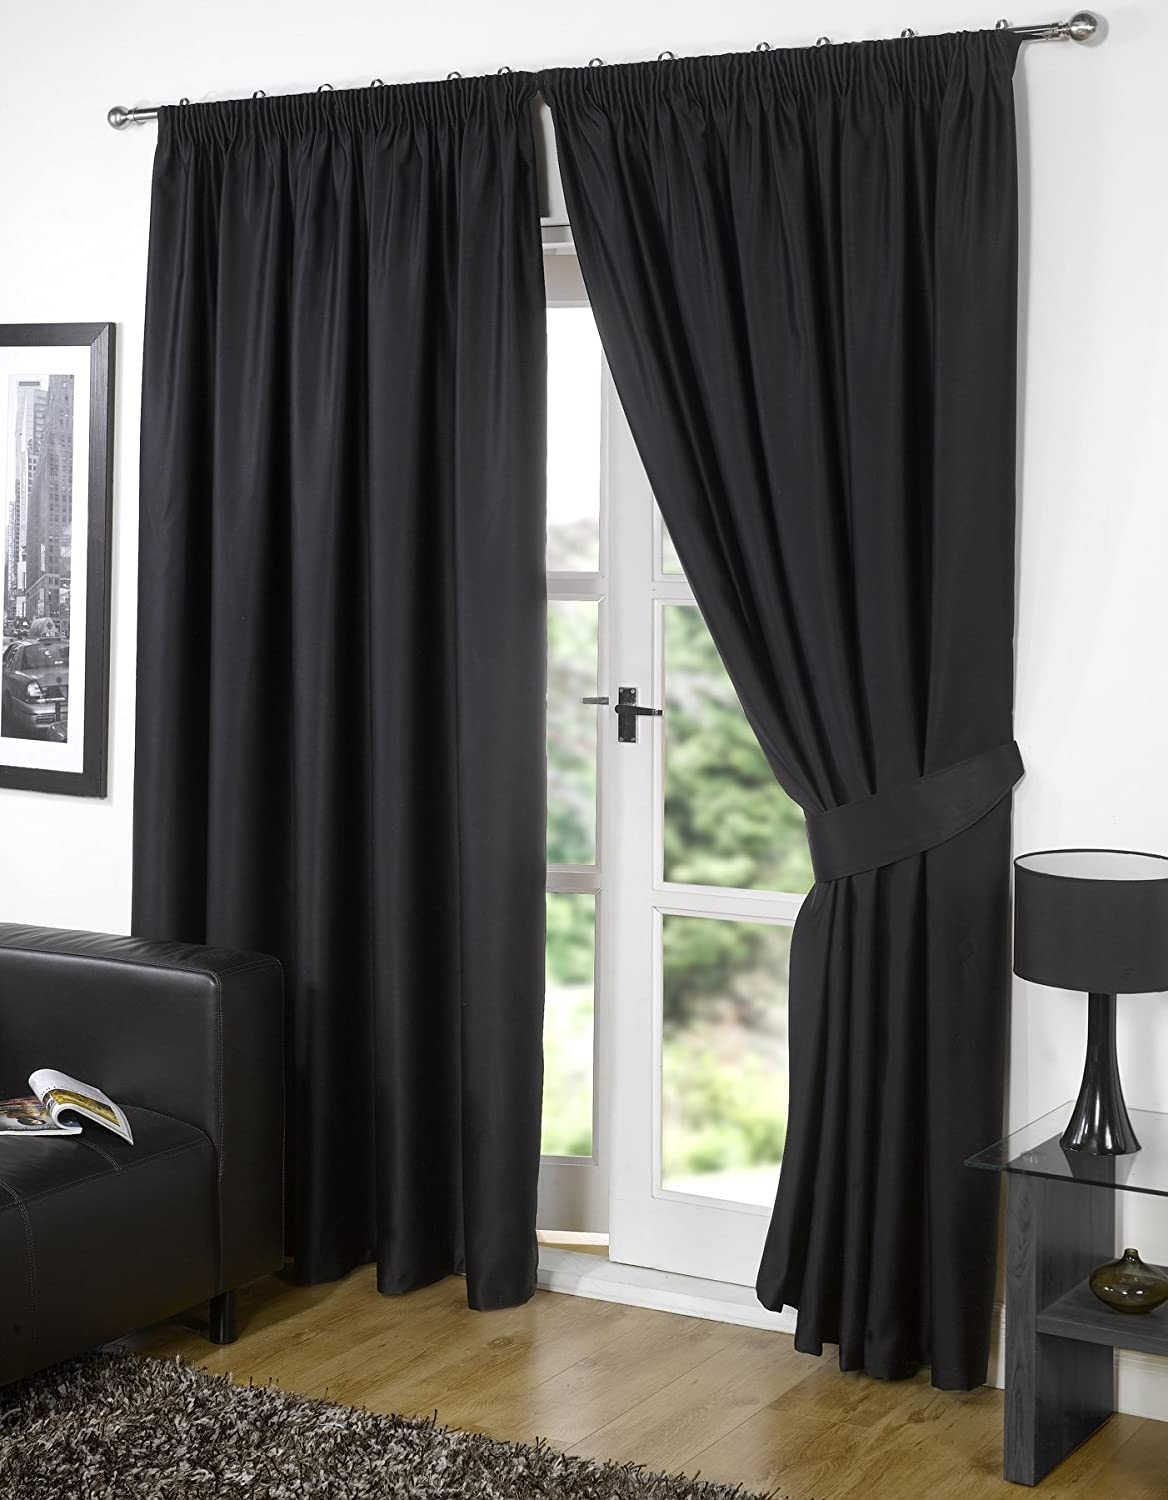 feature blackout and friendly black out of have soundproof ecofriendly curtain the also eco styles curtains thermal p